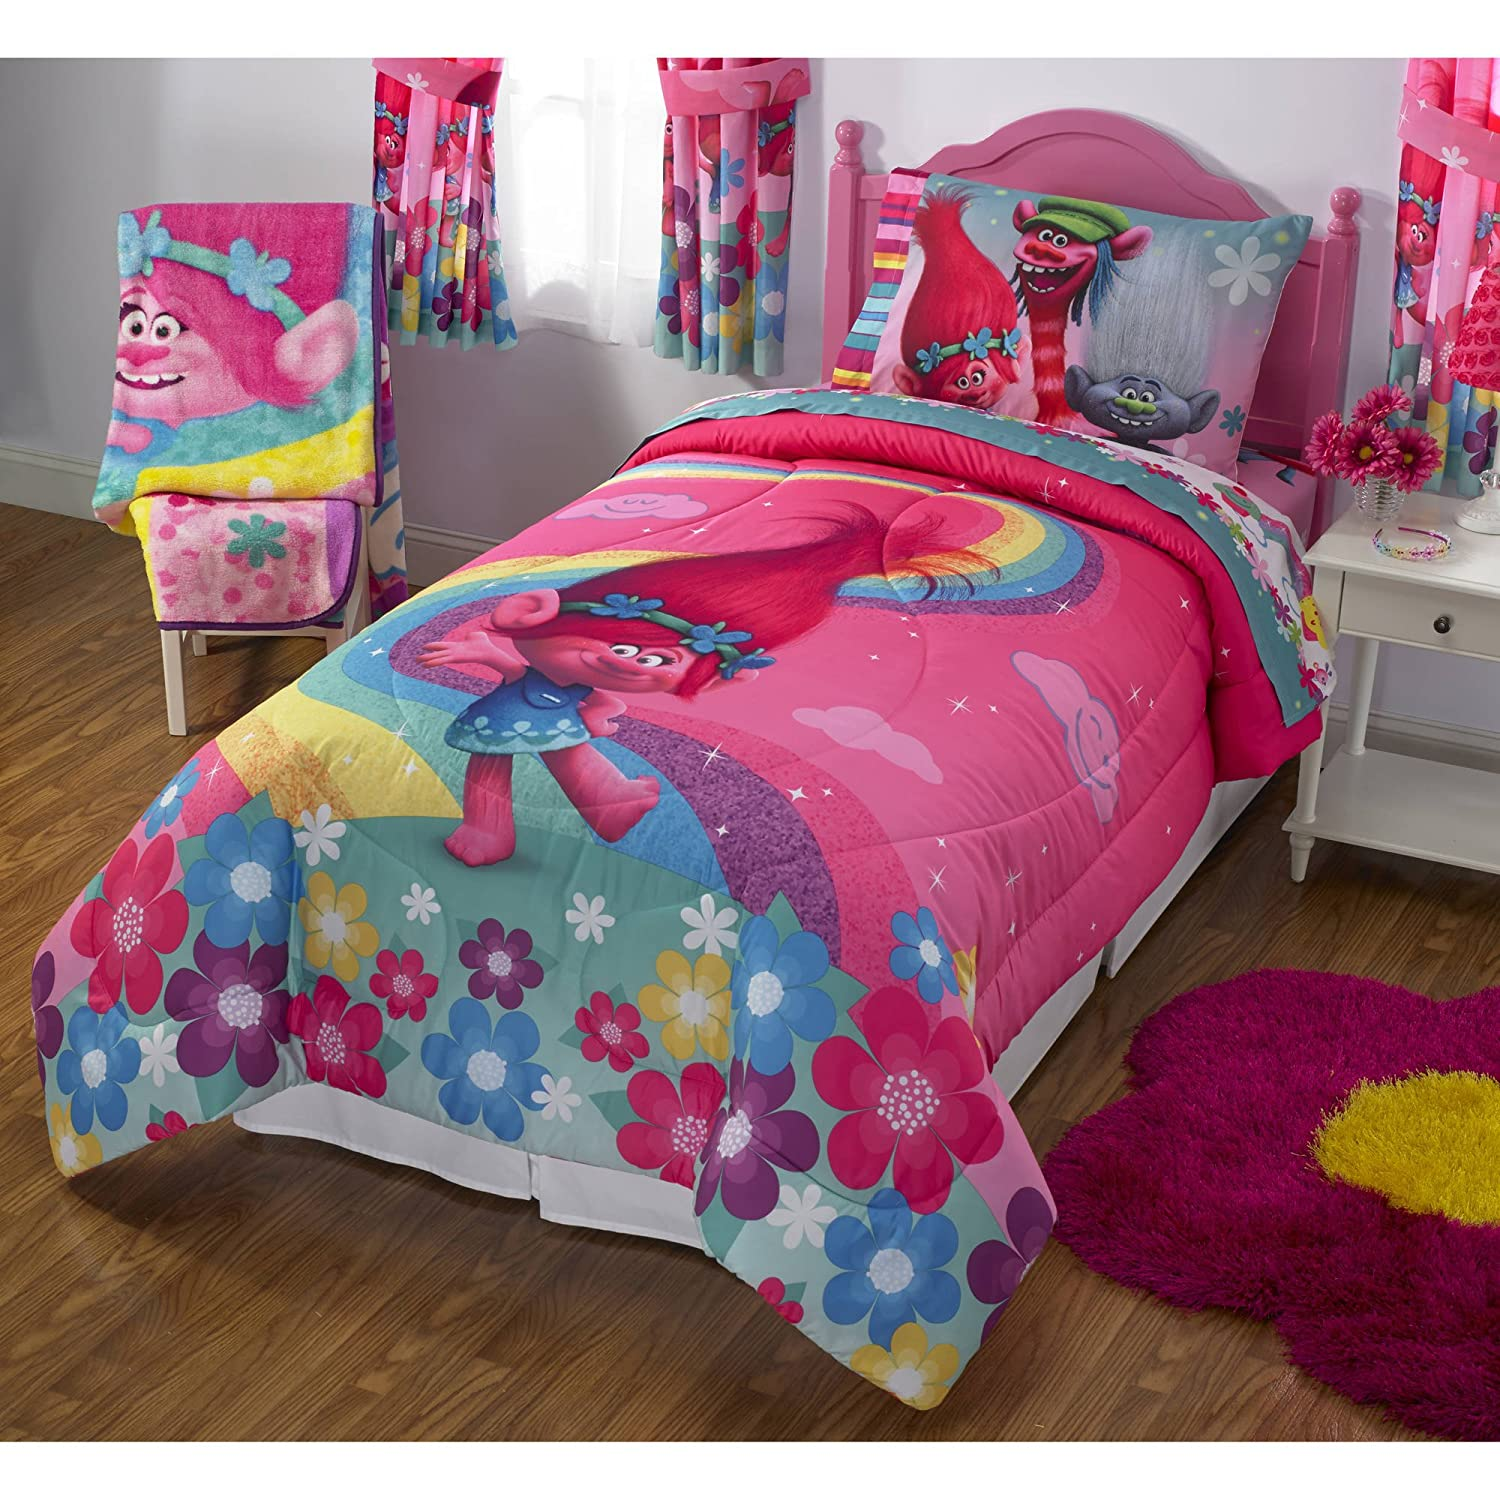 1 Piece Girls Hot Pink Trolls Show Me A Smile Princess Poppy Comforter Twin Full, Rainbow Branch Floral Boho Chic Cartoon Themed Bedding Blue Pink Red Reversible Cartoon Printed Kids Bedding Polyester